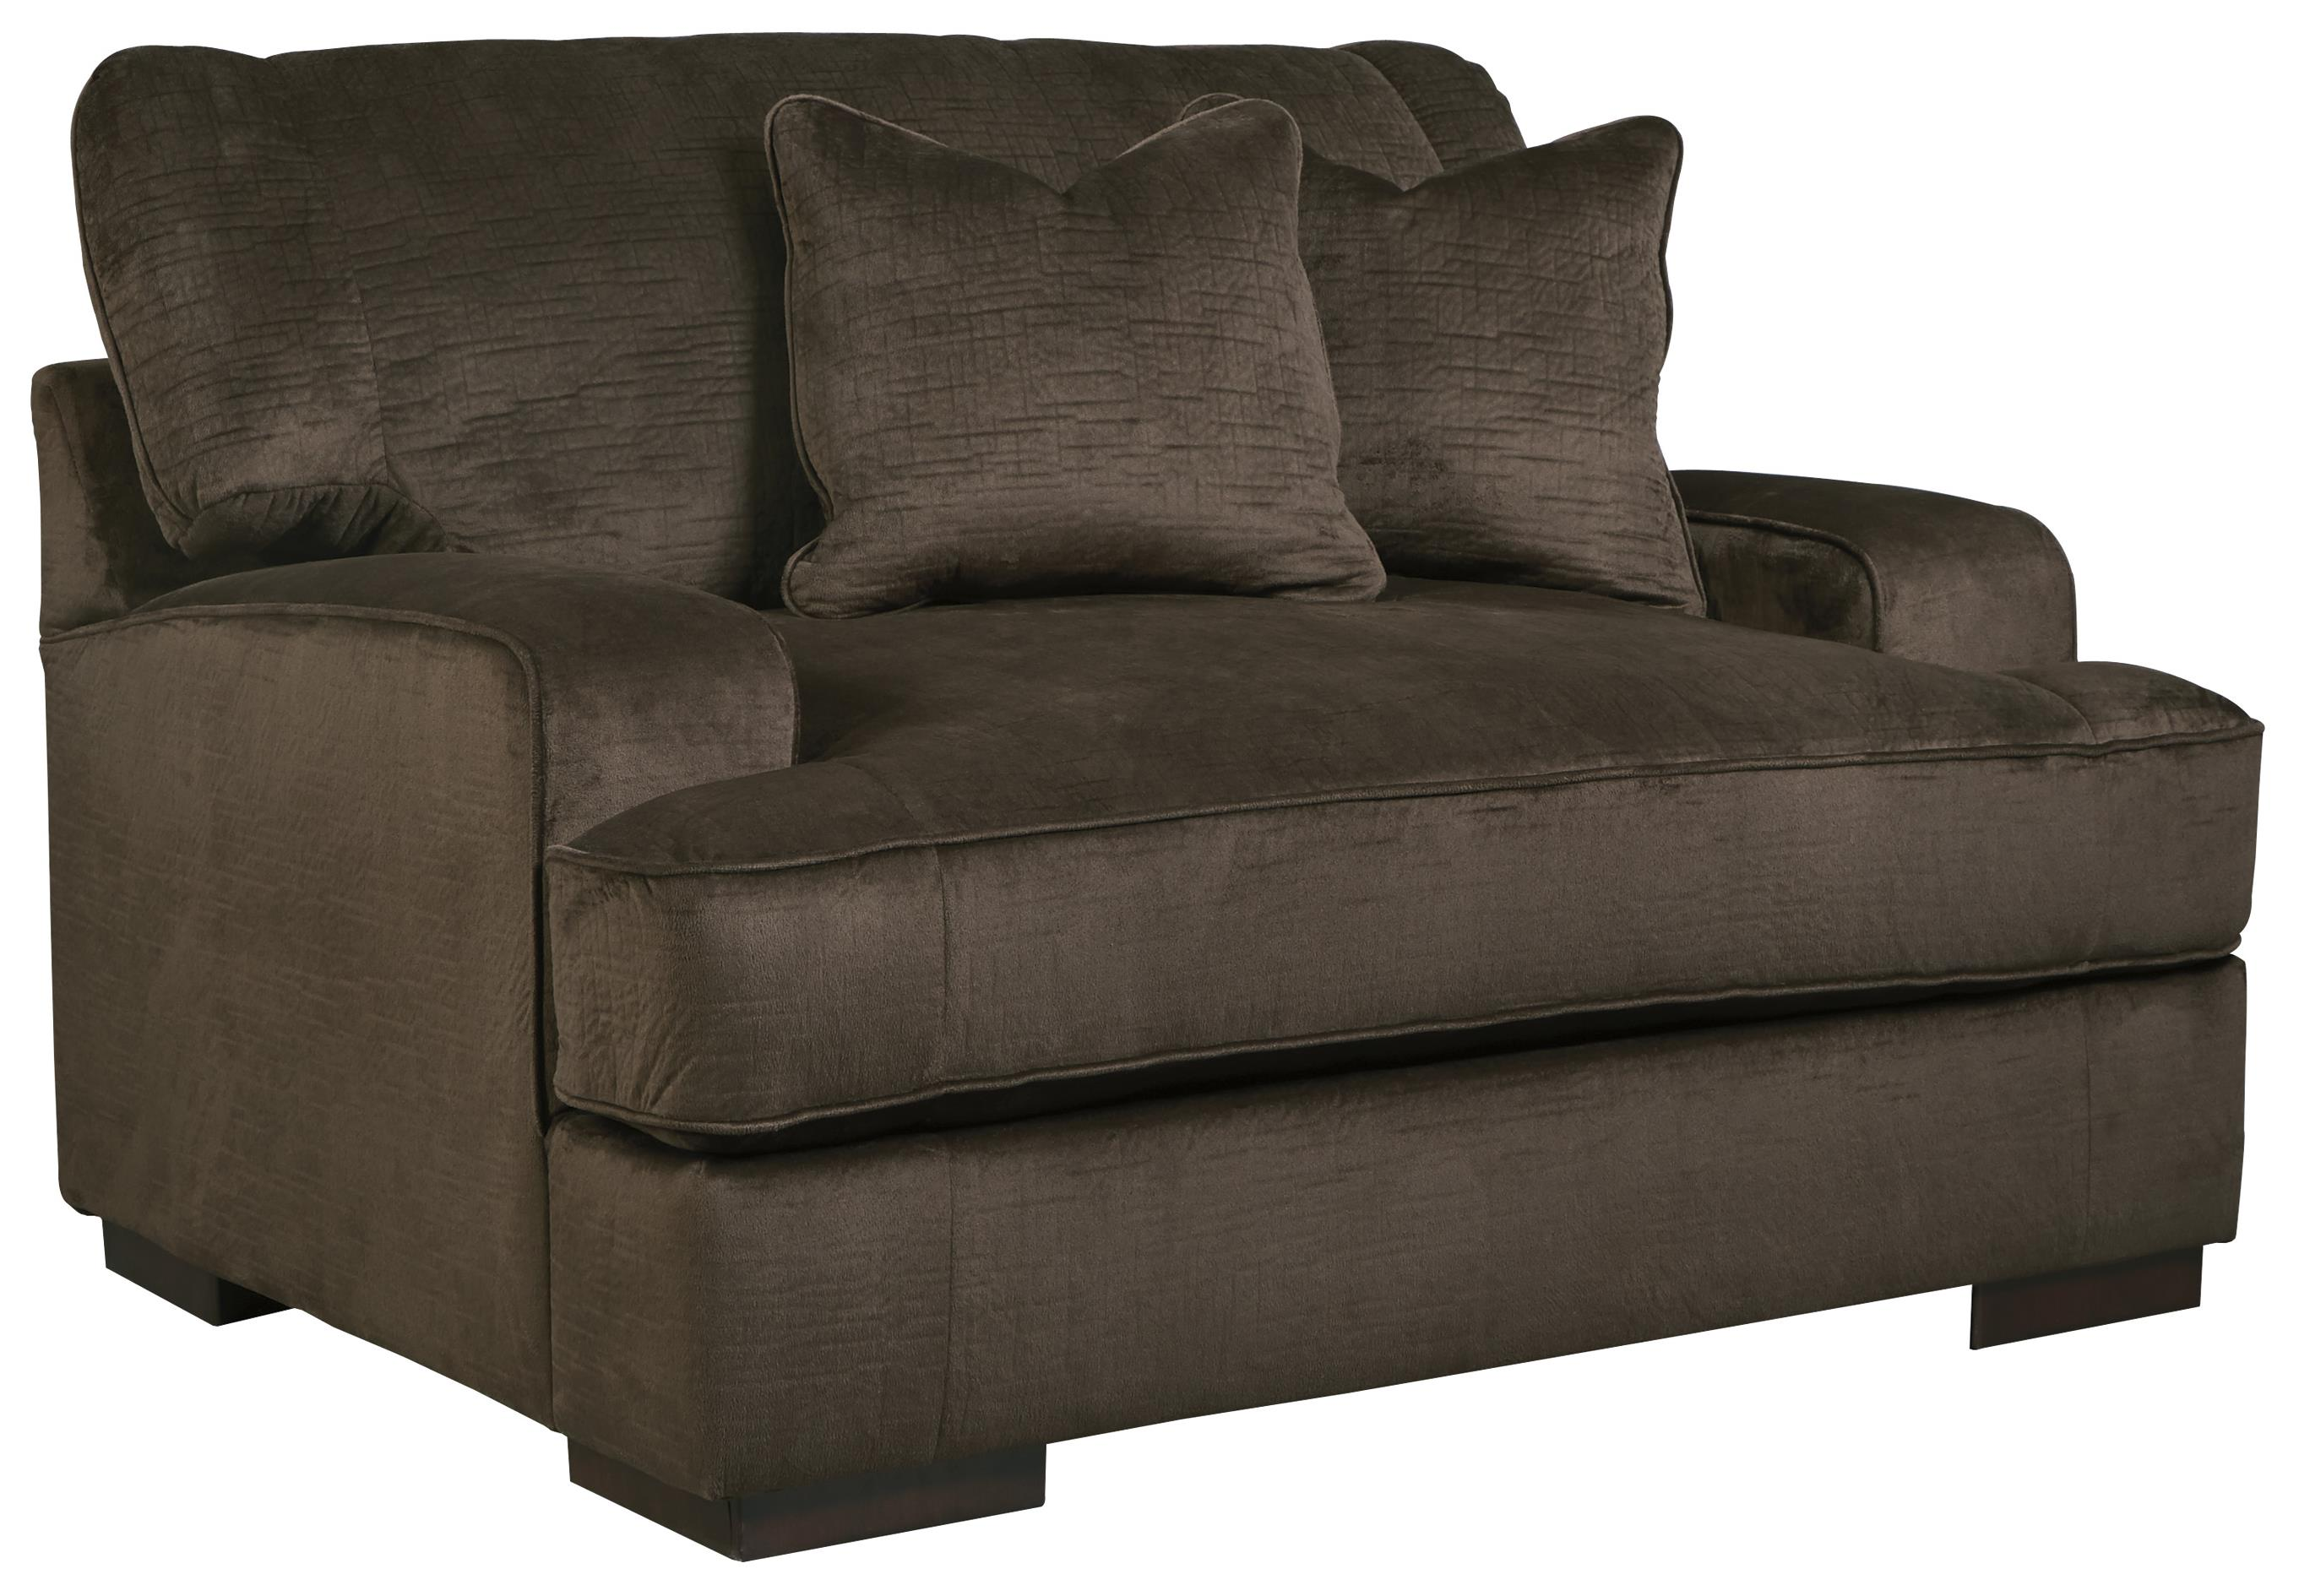 Benchcraft Bisenti Contemporary Chair And A Half With UltraPlush Cushion Du